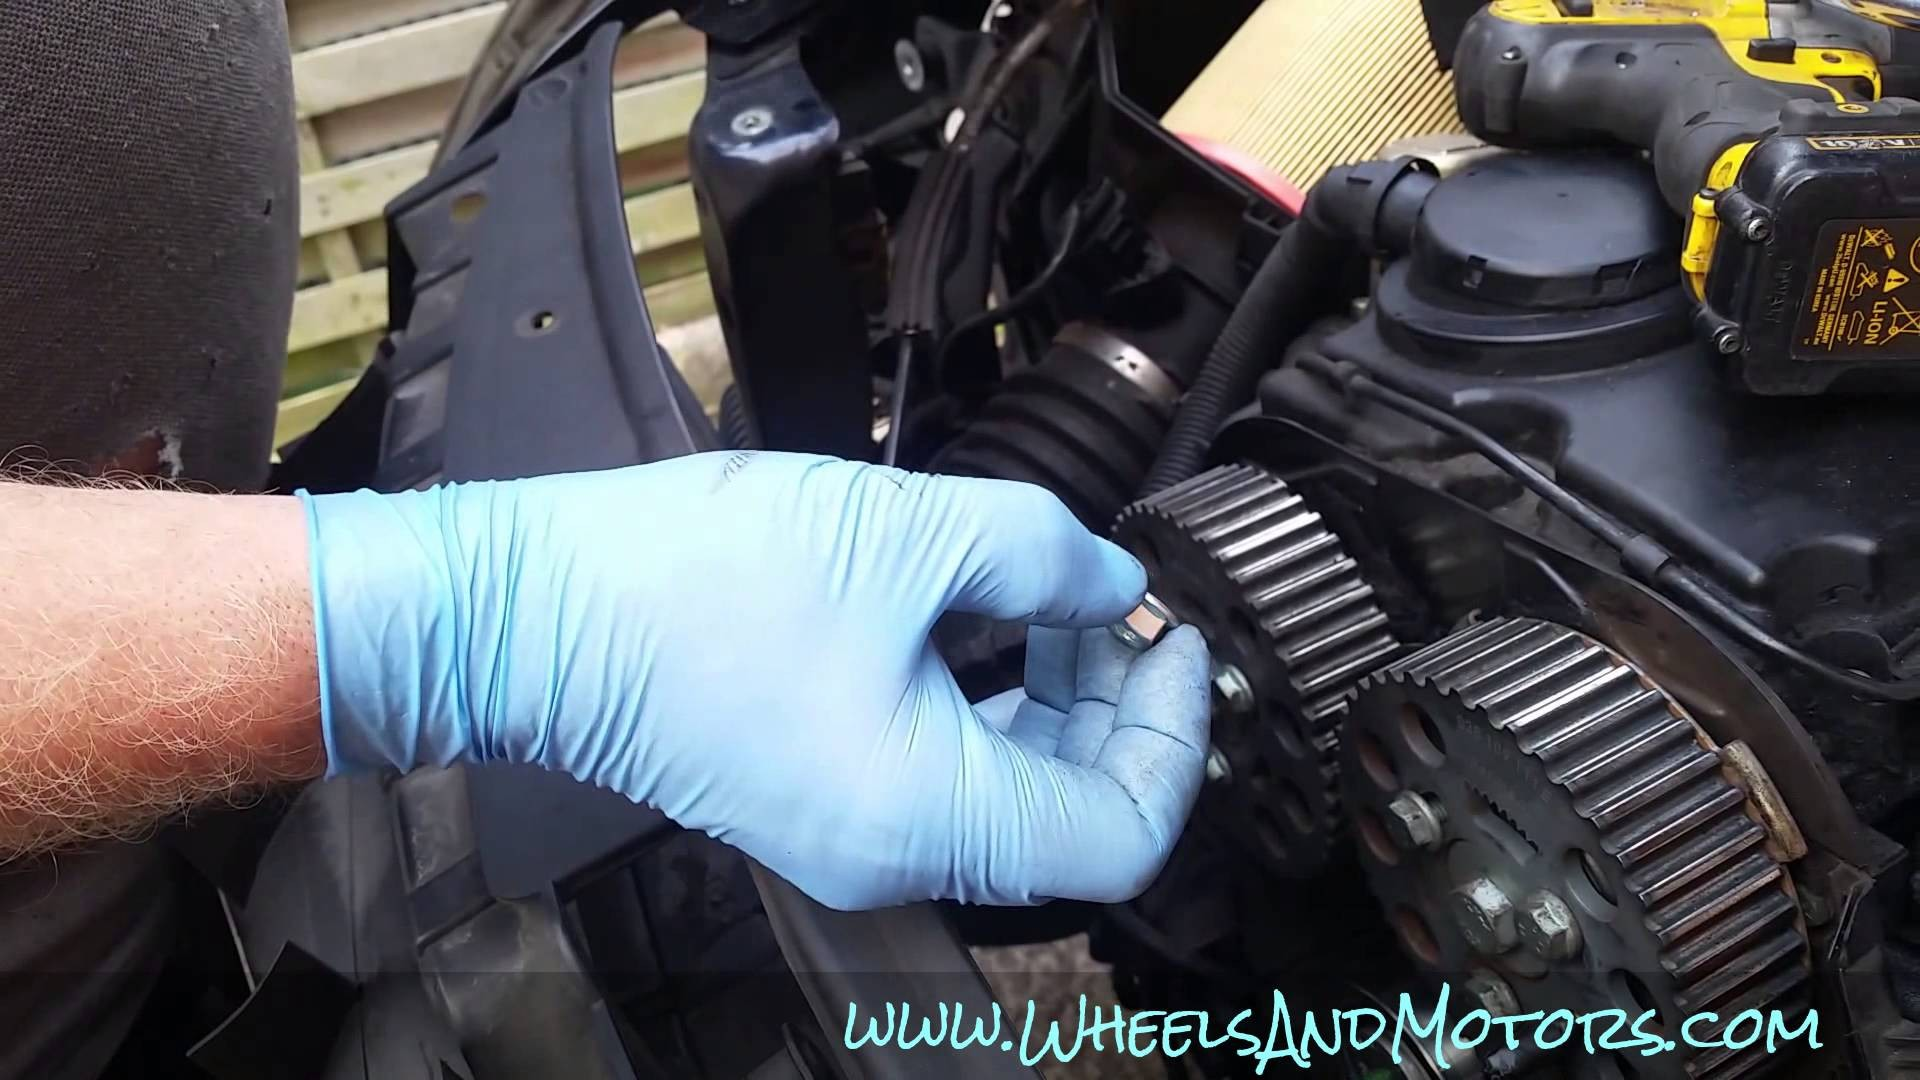 Vw 2 0 Fsi Engine Diagram How to Replace Timing Belt Cambelt and Water Pump On 2 0 Tdi Of Vw 2 0 Fsi Engine Diagram